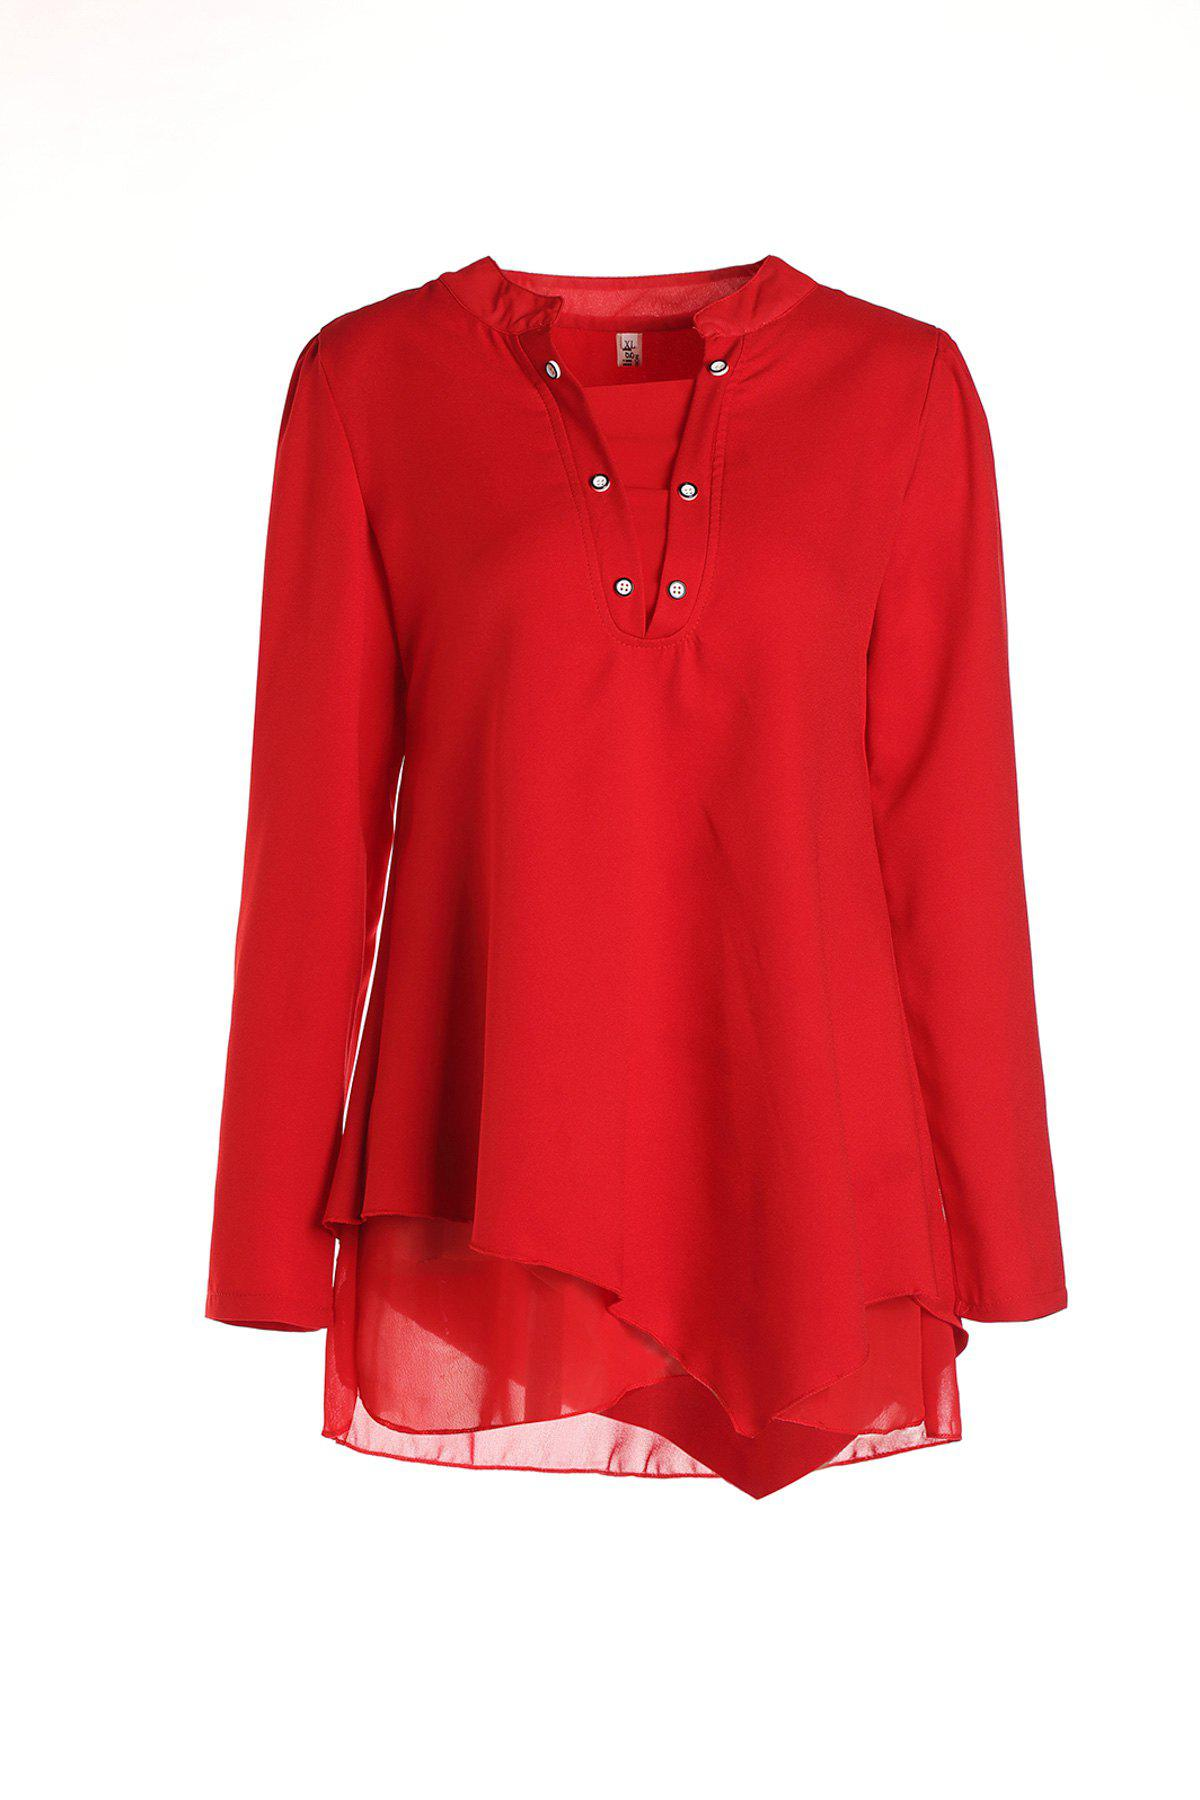 Red Blouse Graceful à manches longues col rond Femmes - Rouge M